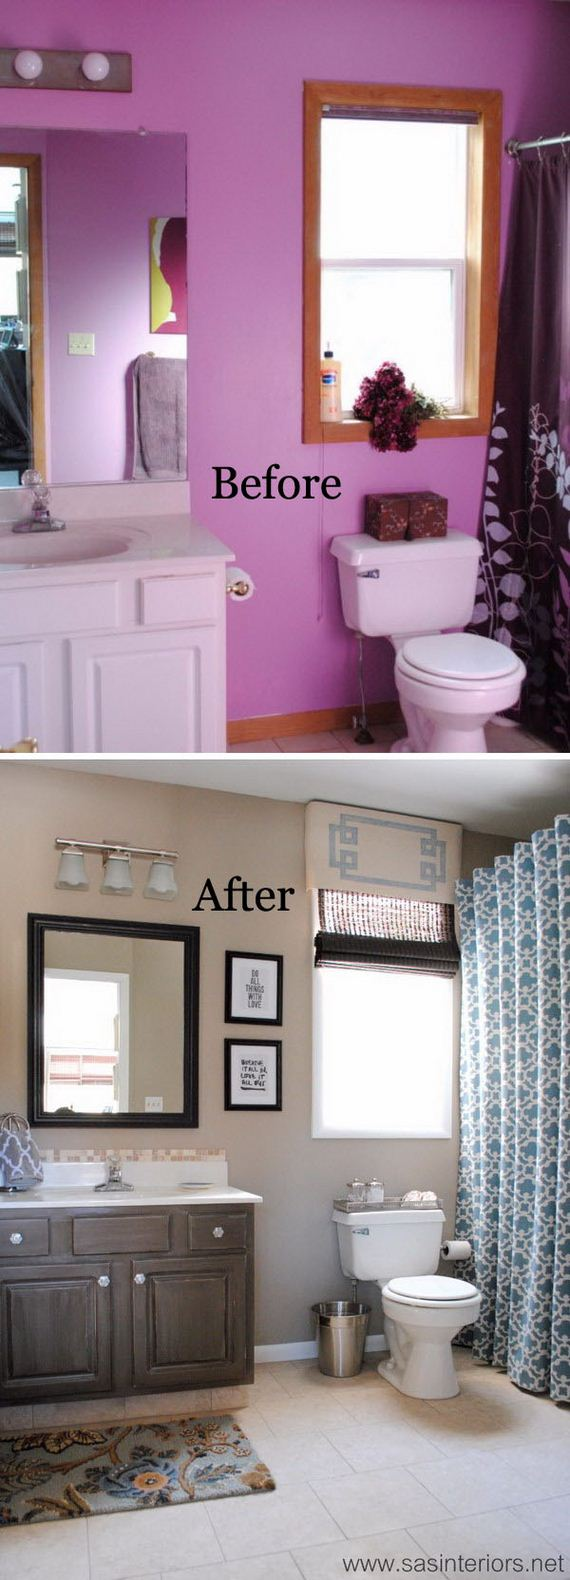 22-awesome-bathroom-makeovers